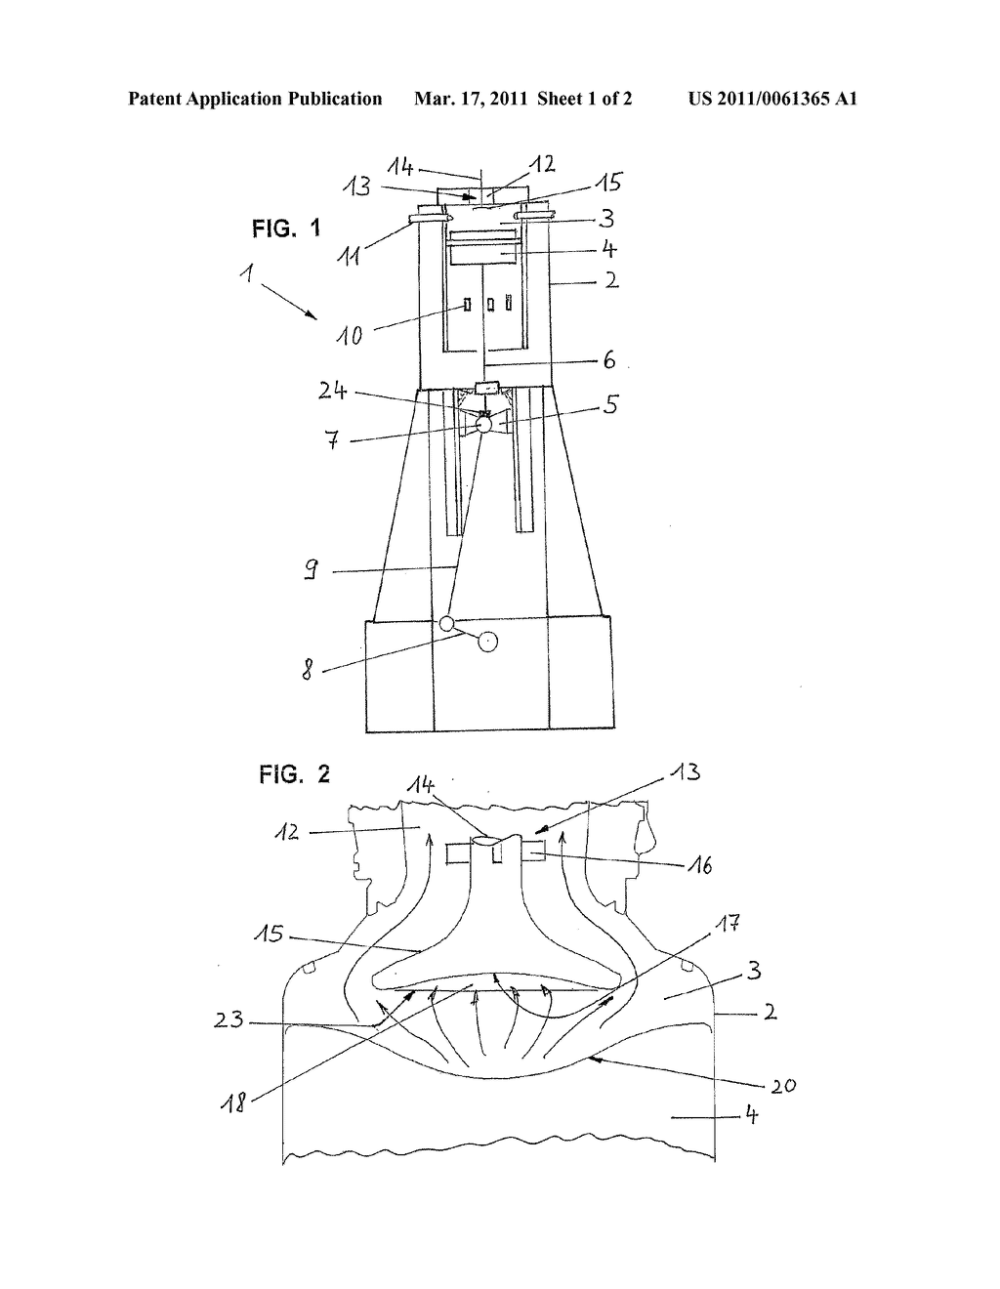 medium resolution of exhaust valve for a large sized two stroke diesel engine process for reduction on nox formation in such an engine and such engine diagram schematic